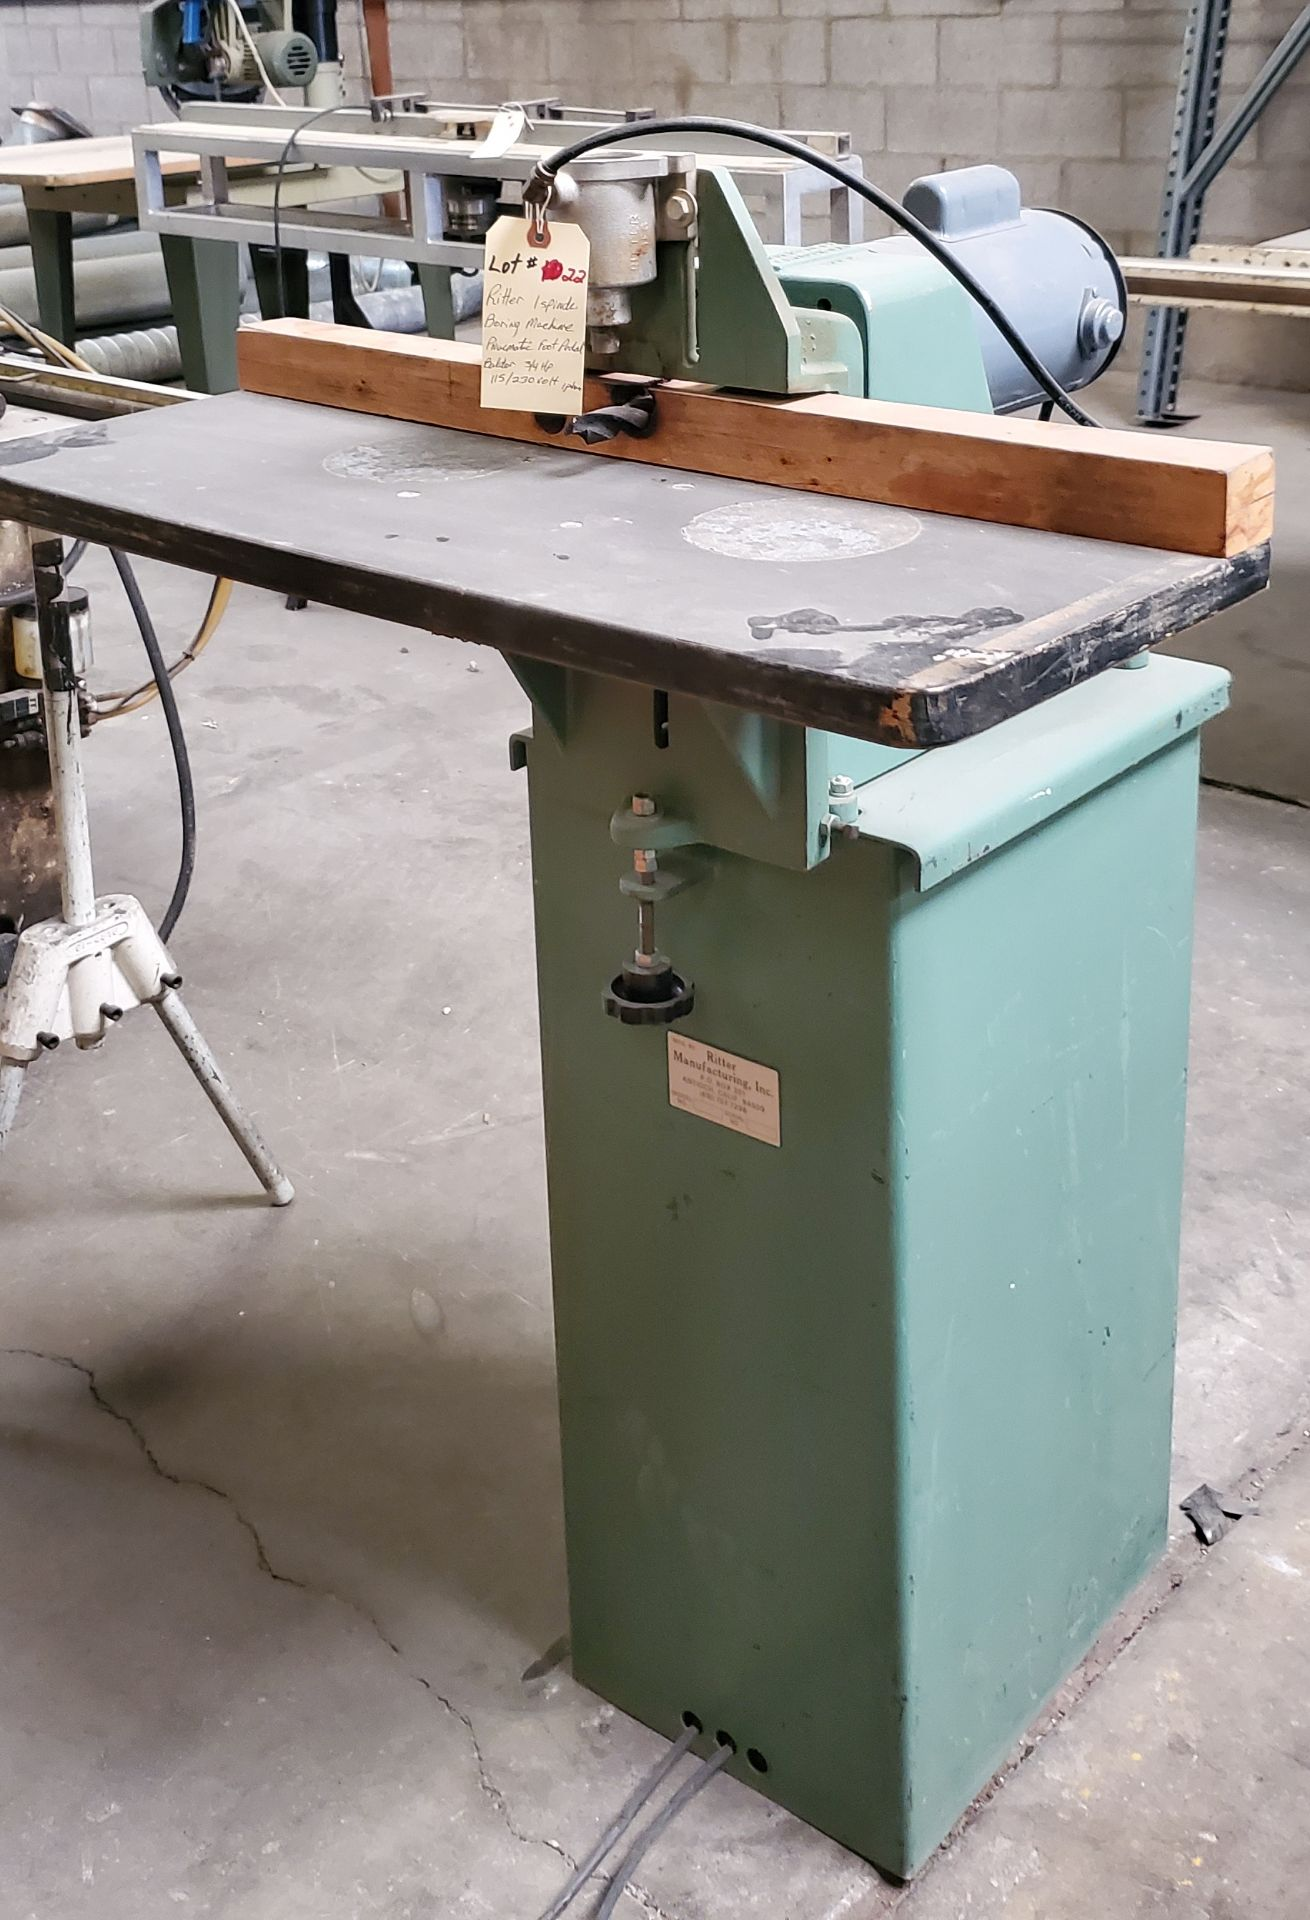 Ritter 1 Spindle Boring Machine, Pneumatic Foot Pedal, Baldor 3/4 HP 115/230 Volts 1 Phase Motor - Image 2 of 7